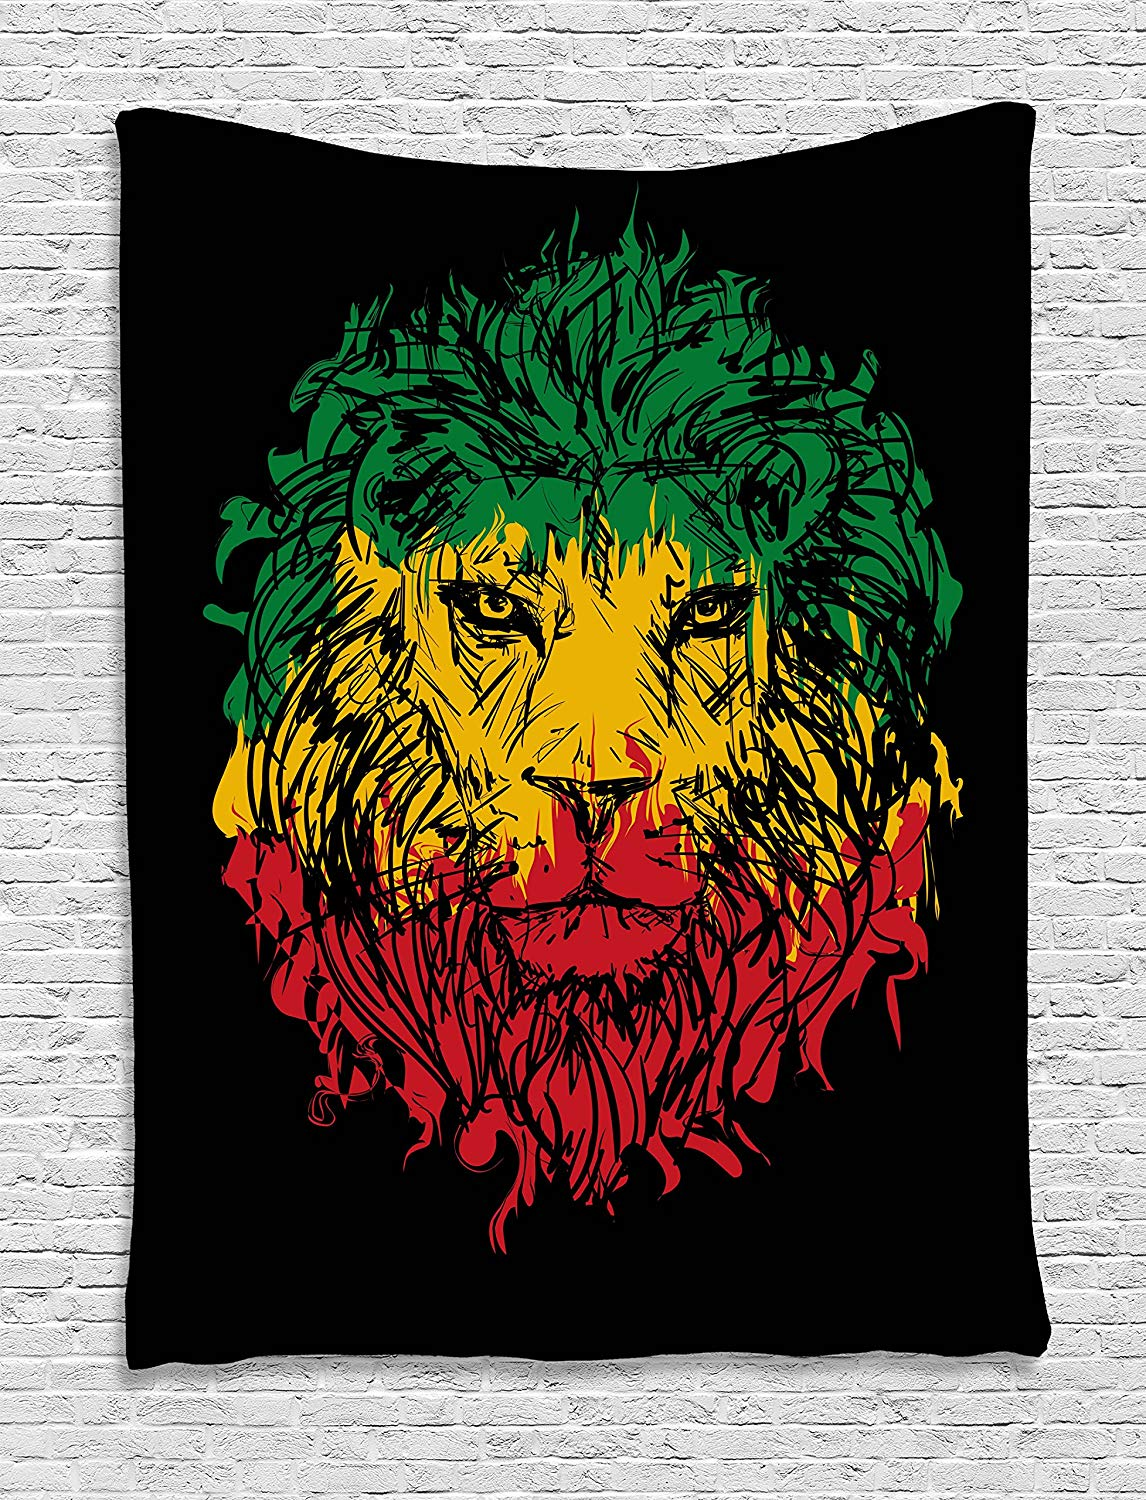 Calico Lion Headband Black Background Wall Rug